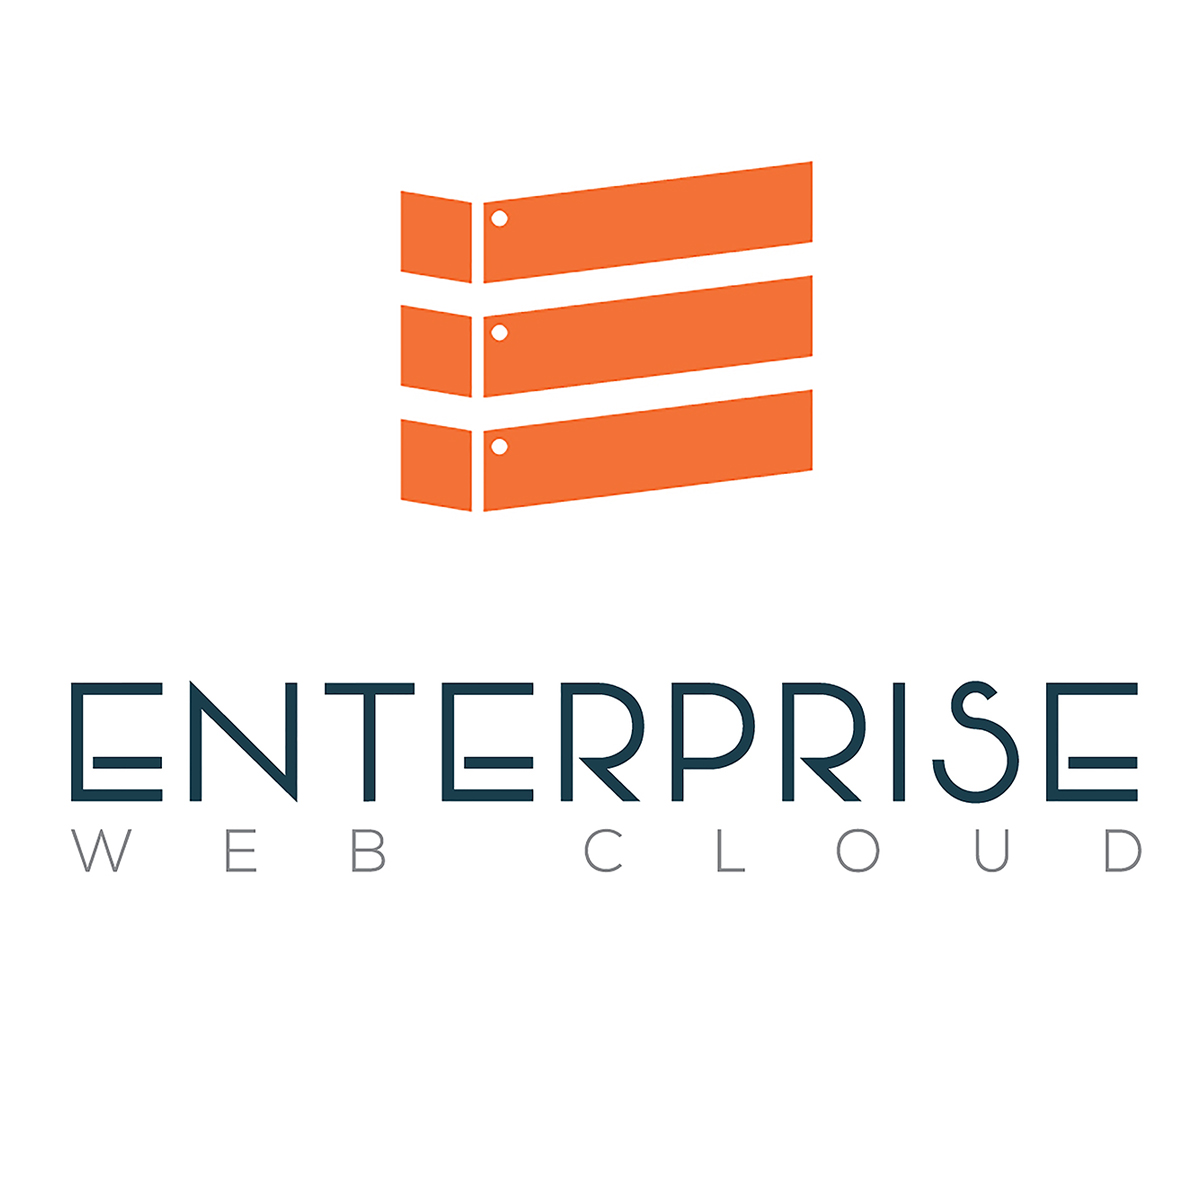 Enterprise Web Cloud Inc.